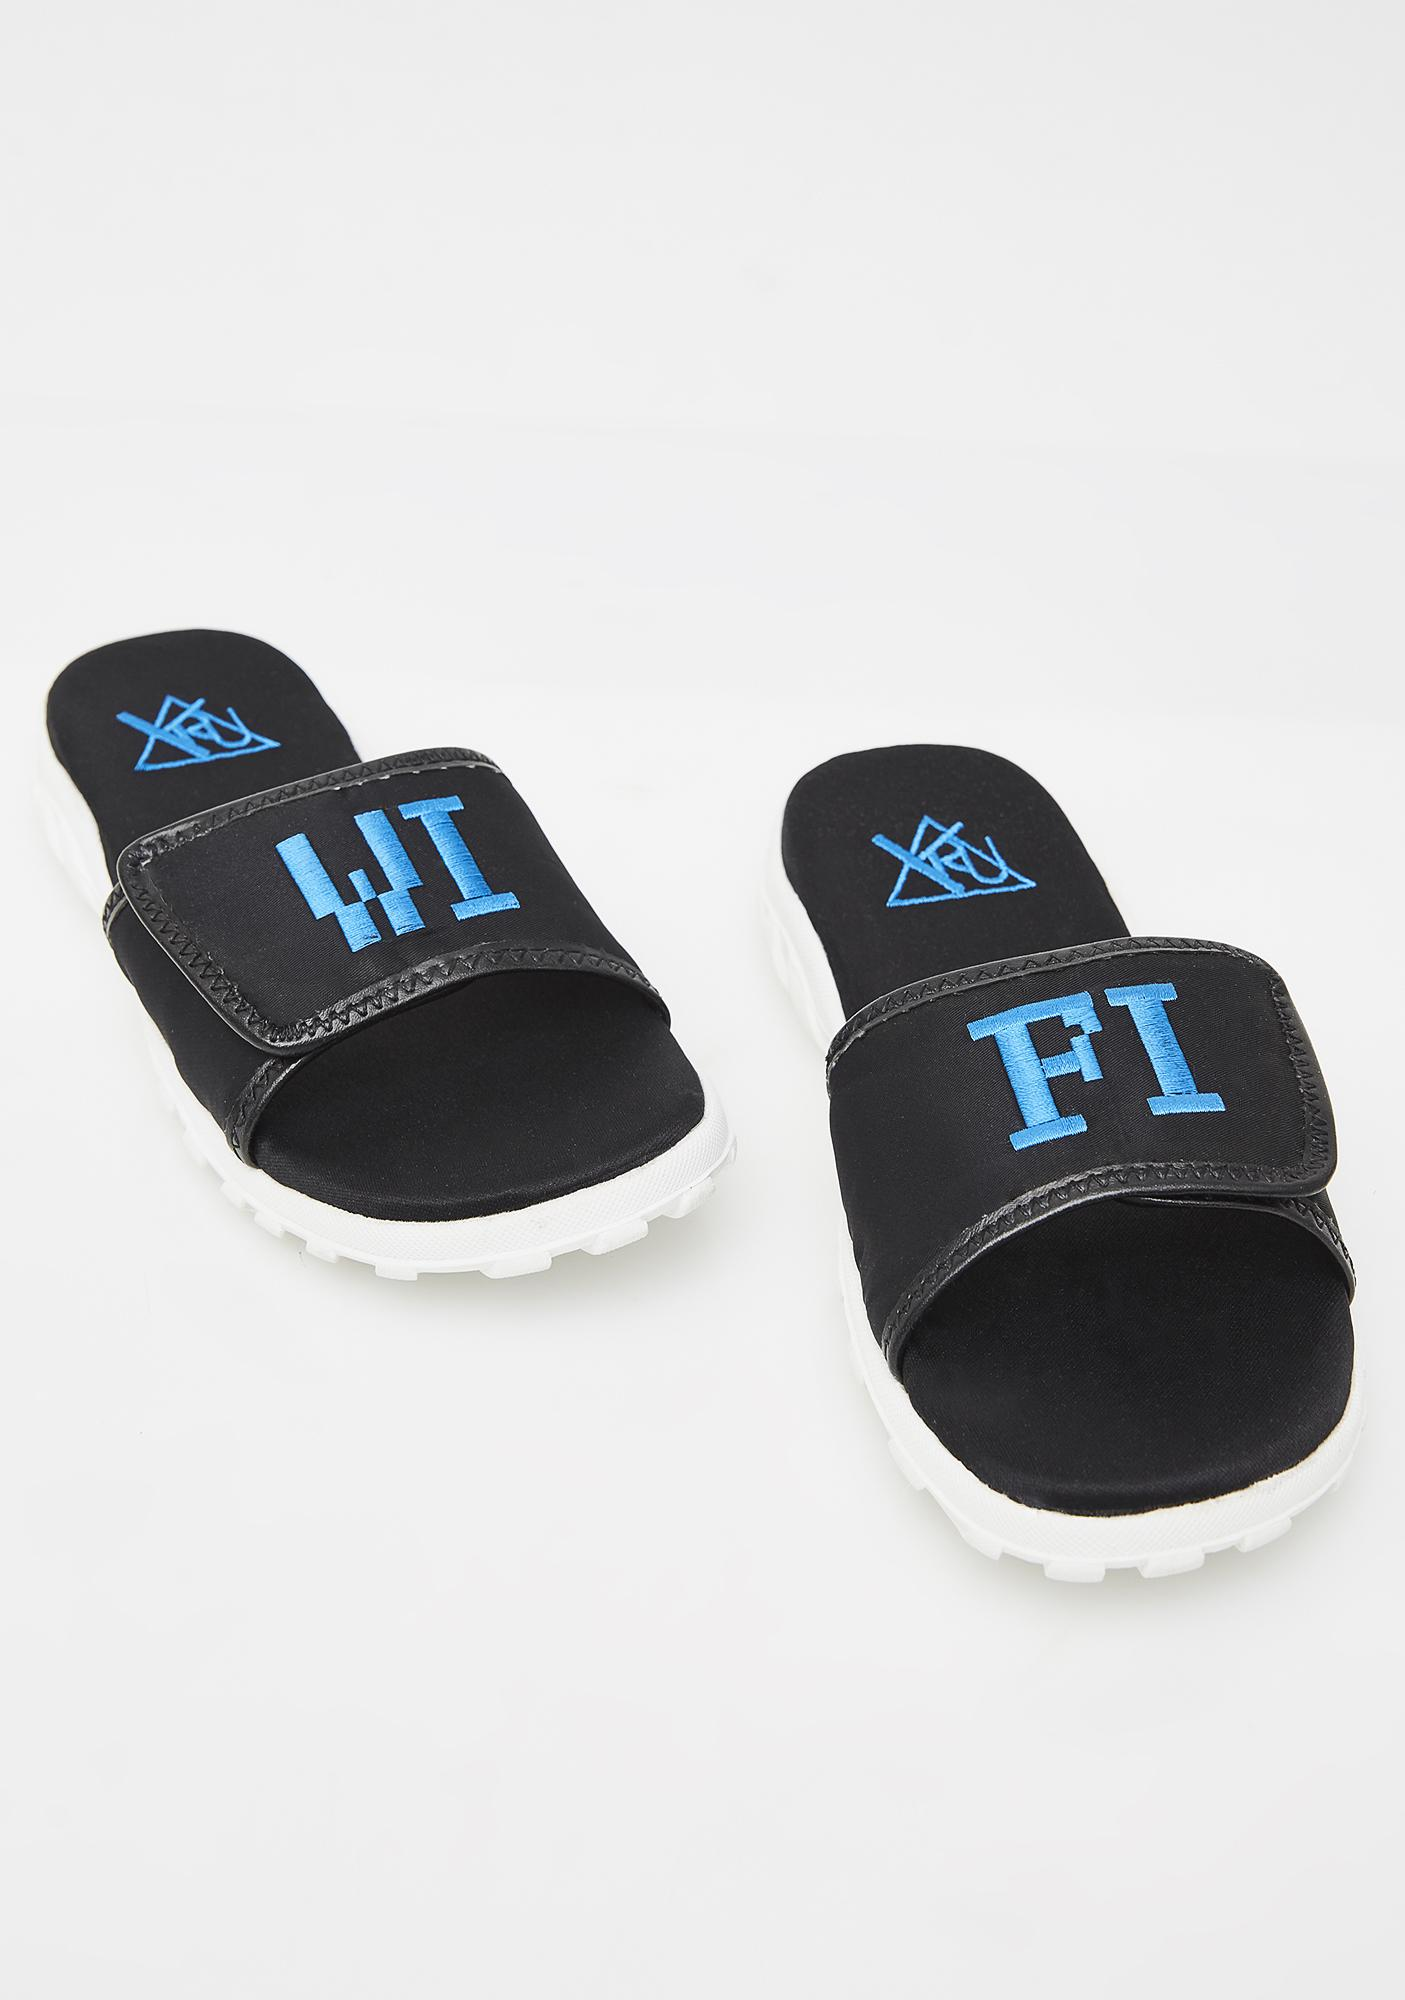 Y.R.U. Wifi Nile Slides